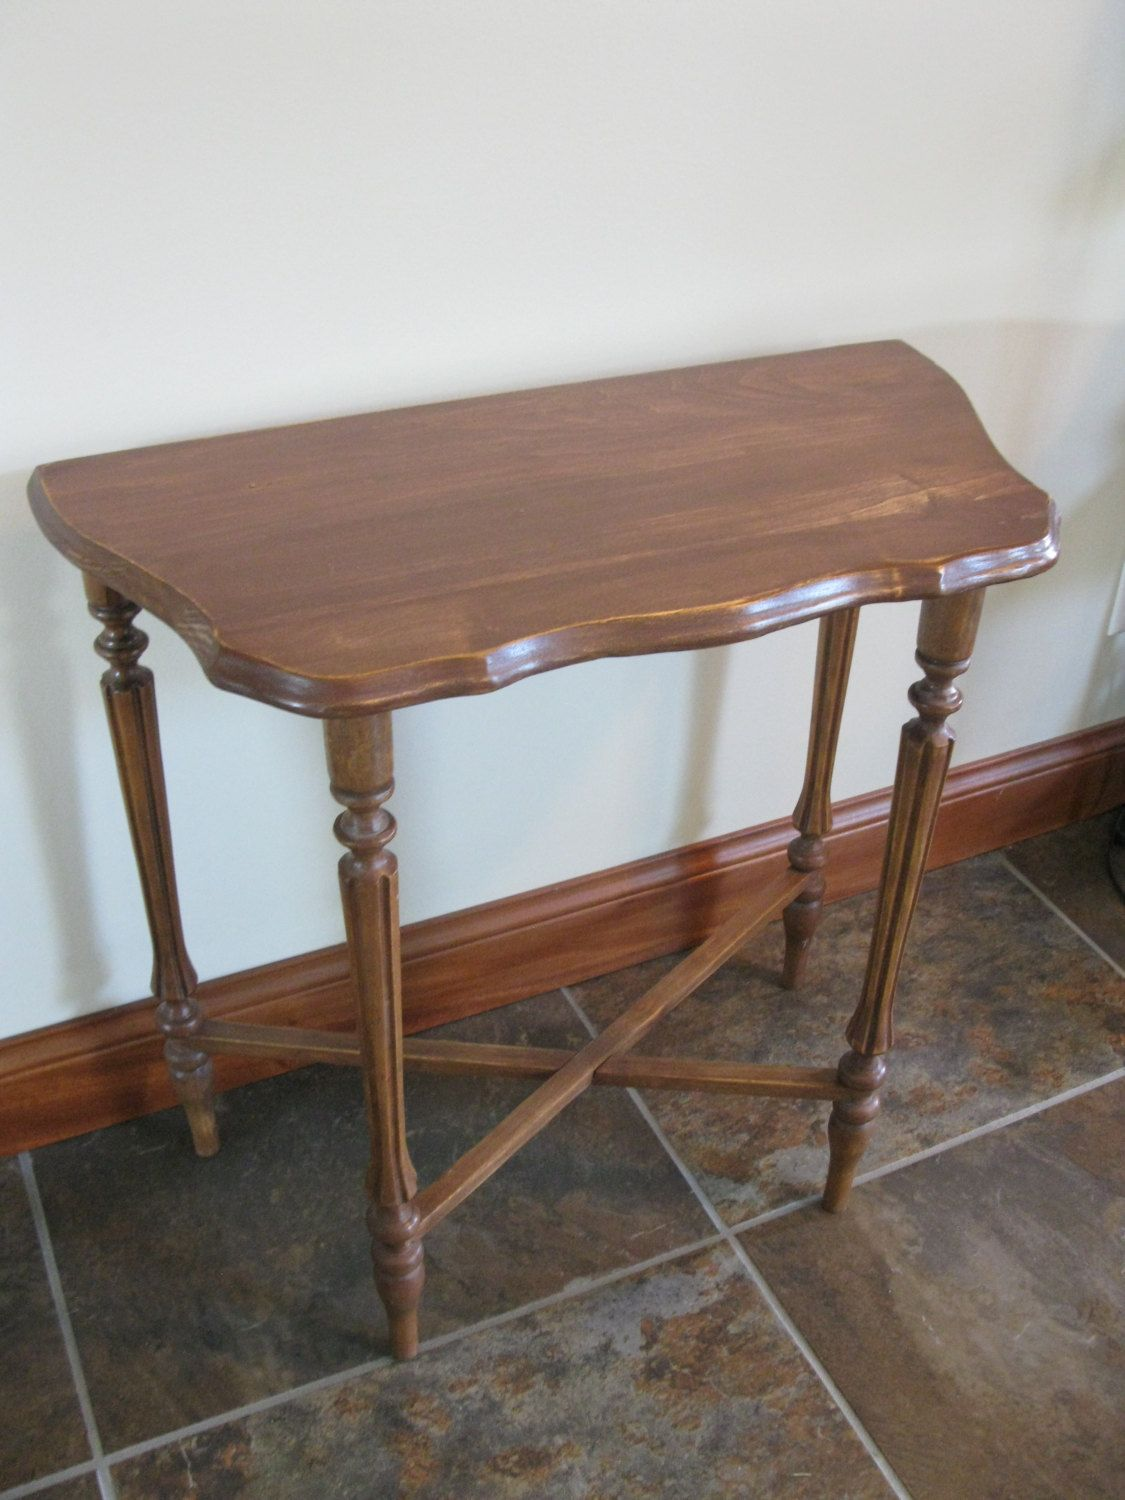 Vintage Half Moon Side Table   Accent Table  Small Wood Table  Night Stand